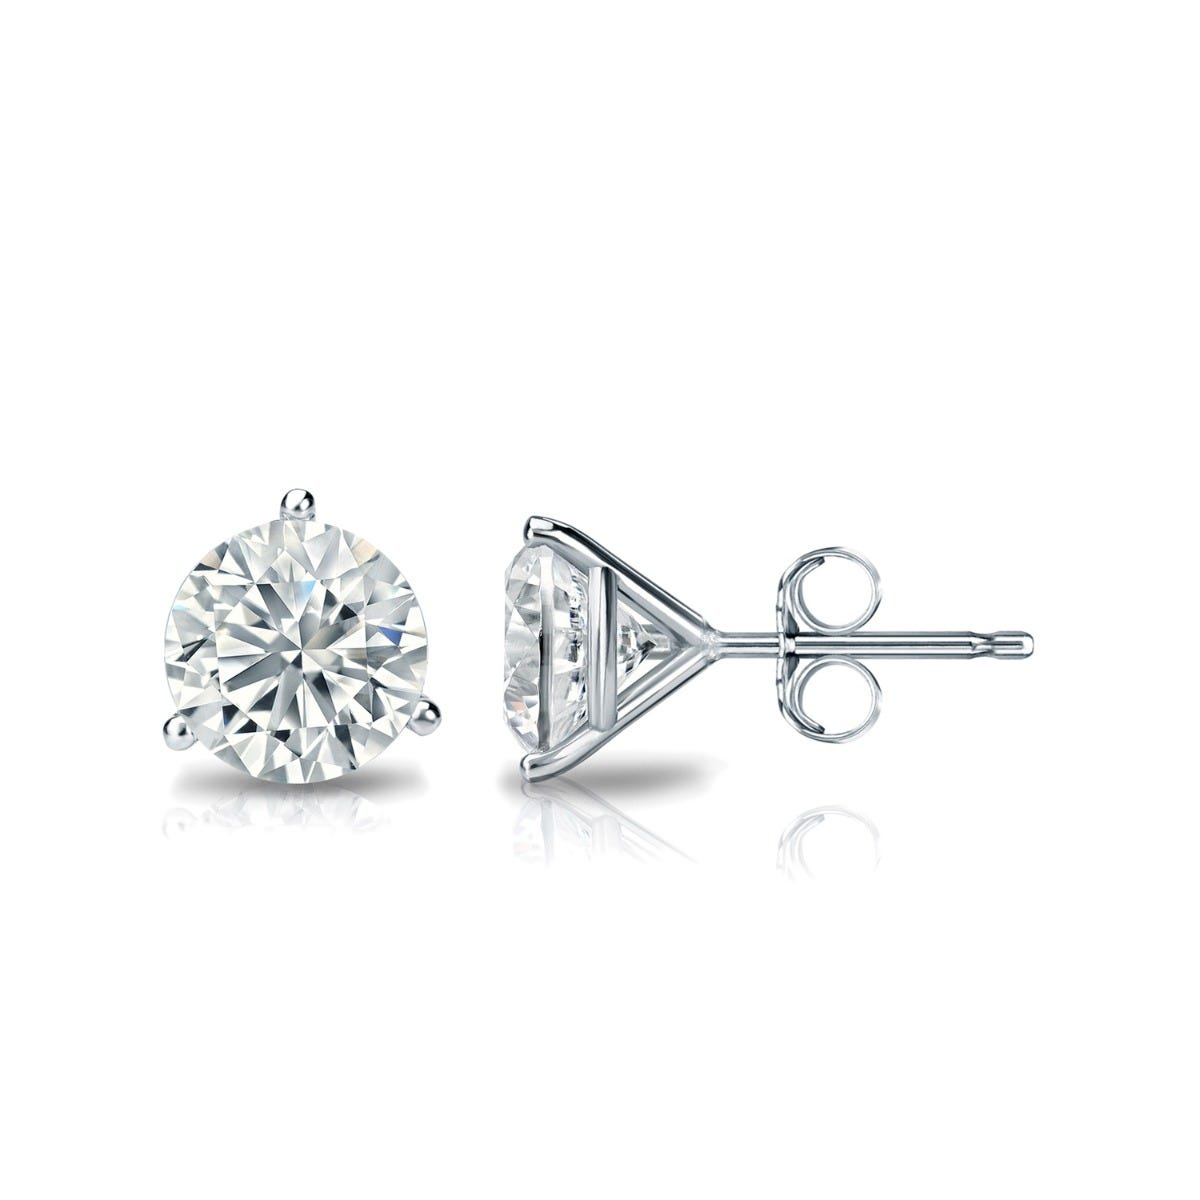 1 CTTW Round Diamond Solitaire Stud Earrings IJ SI2 in 18K White Gold IGI Certified 3-Prong Setting